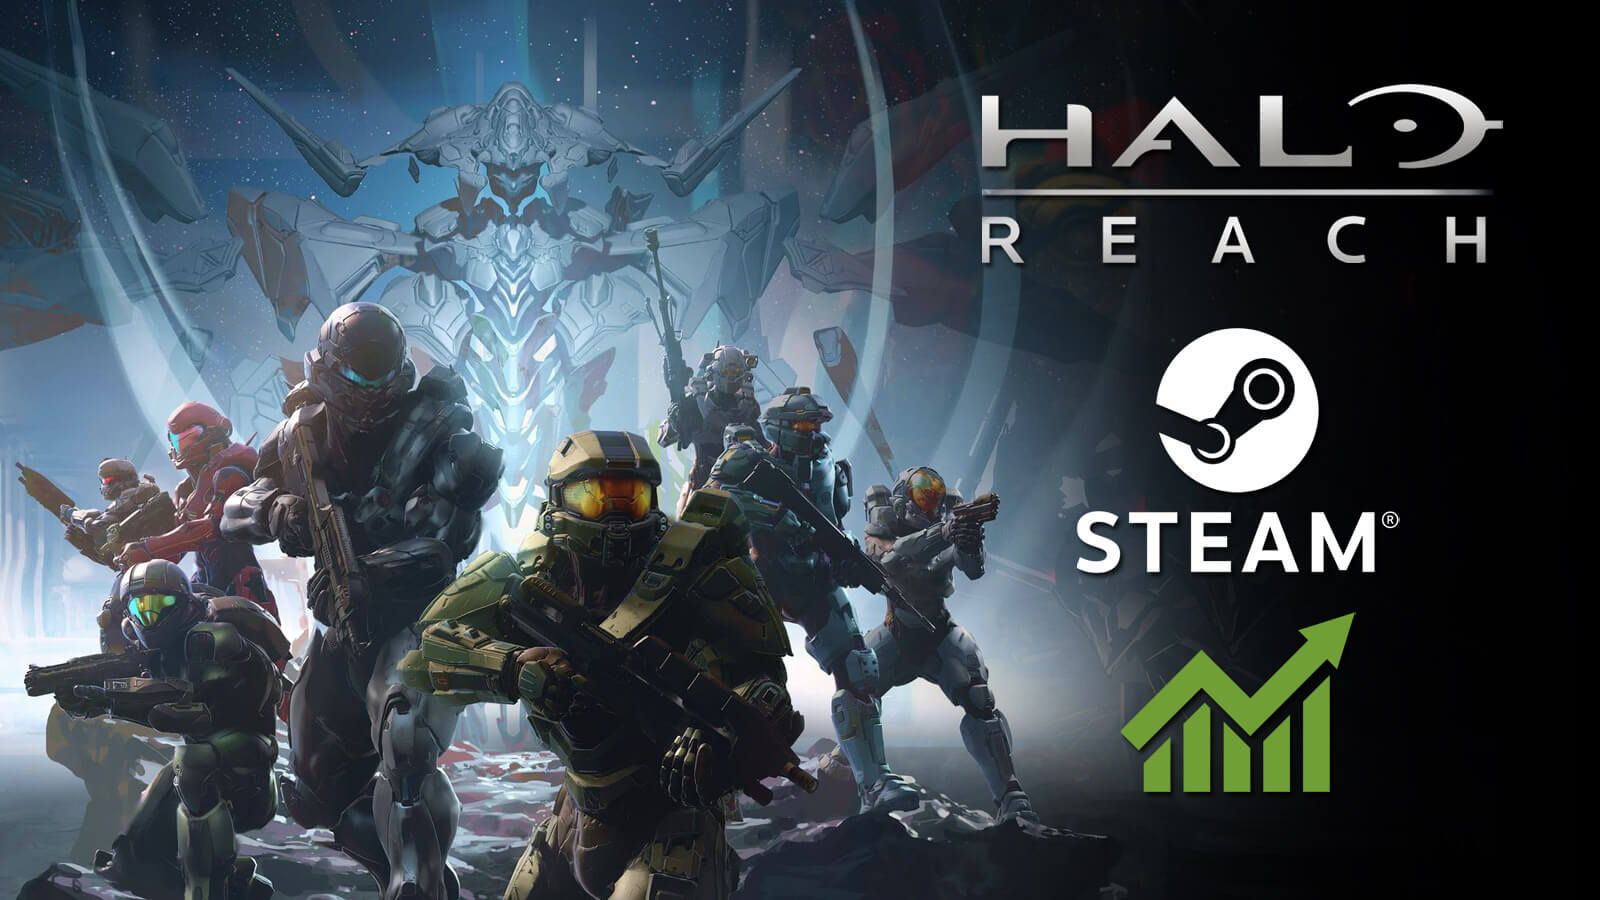 Halo The Master Chief Collection Becomes Best Selling